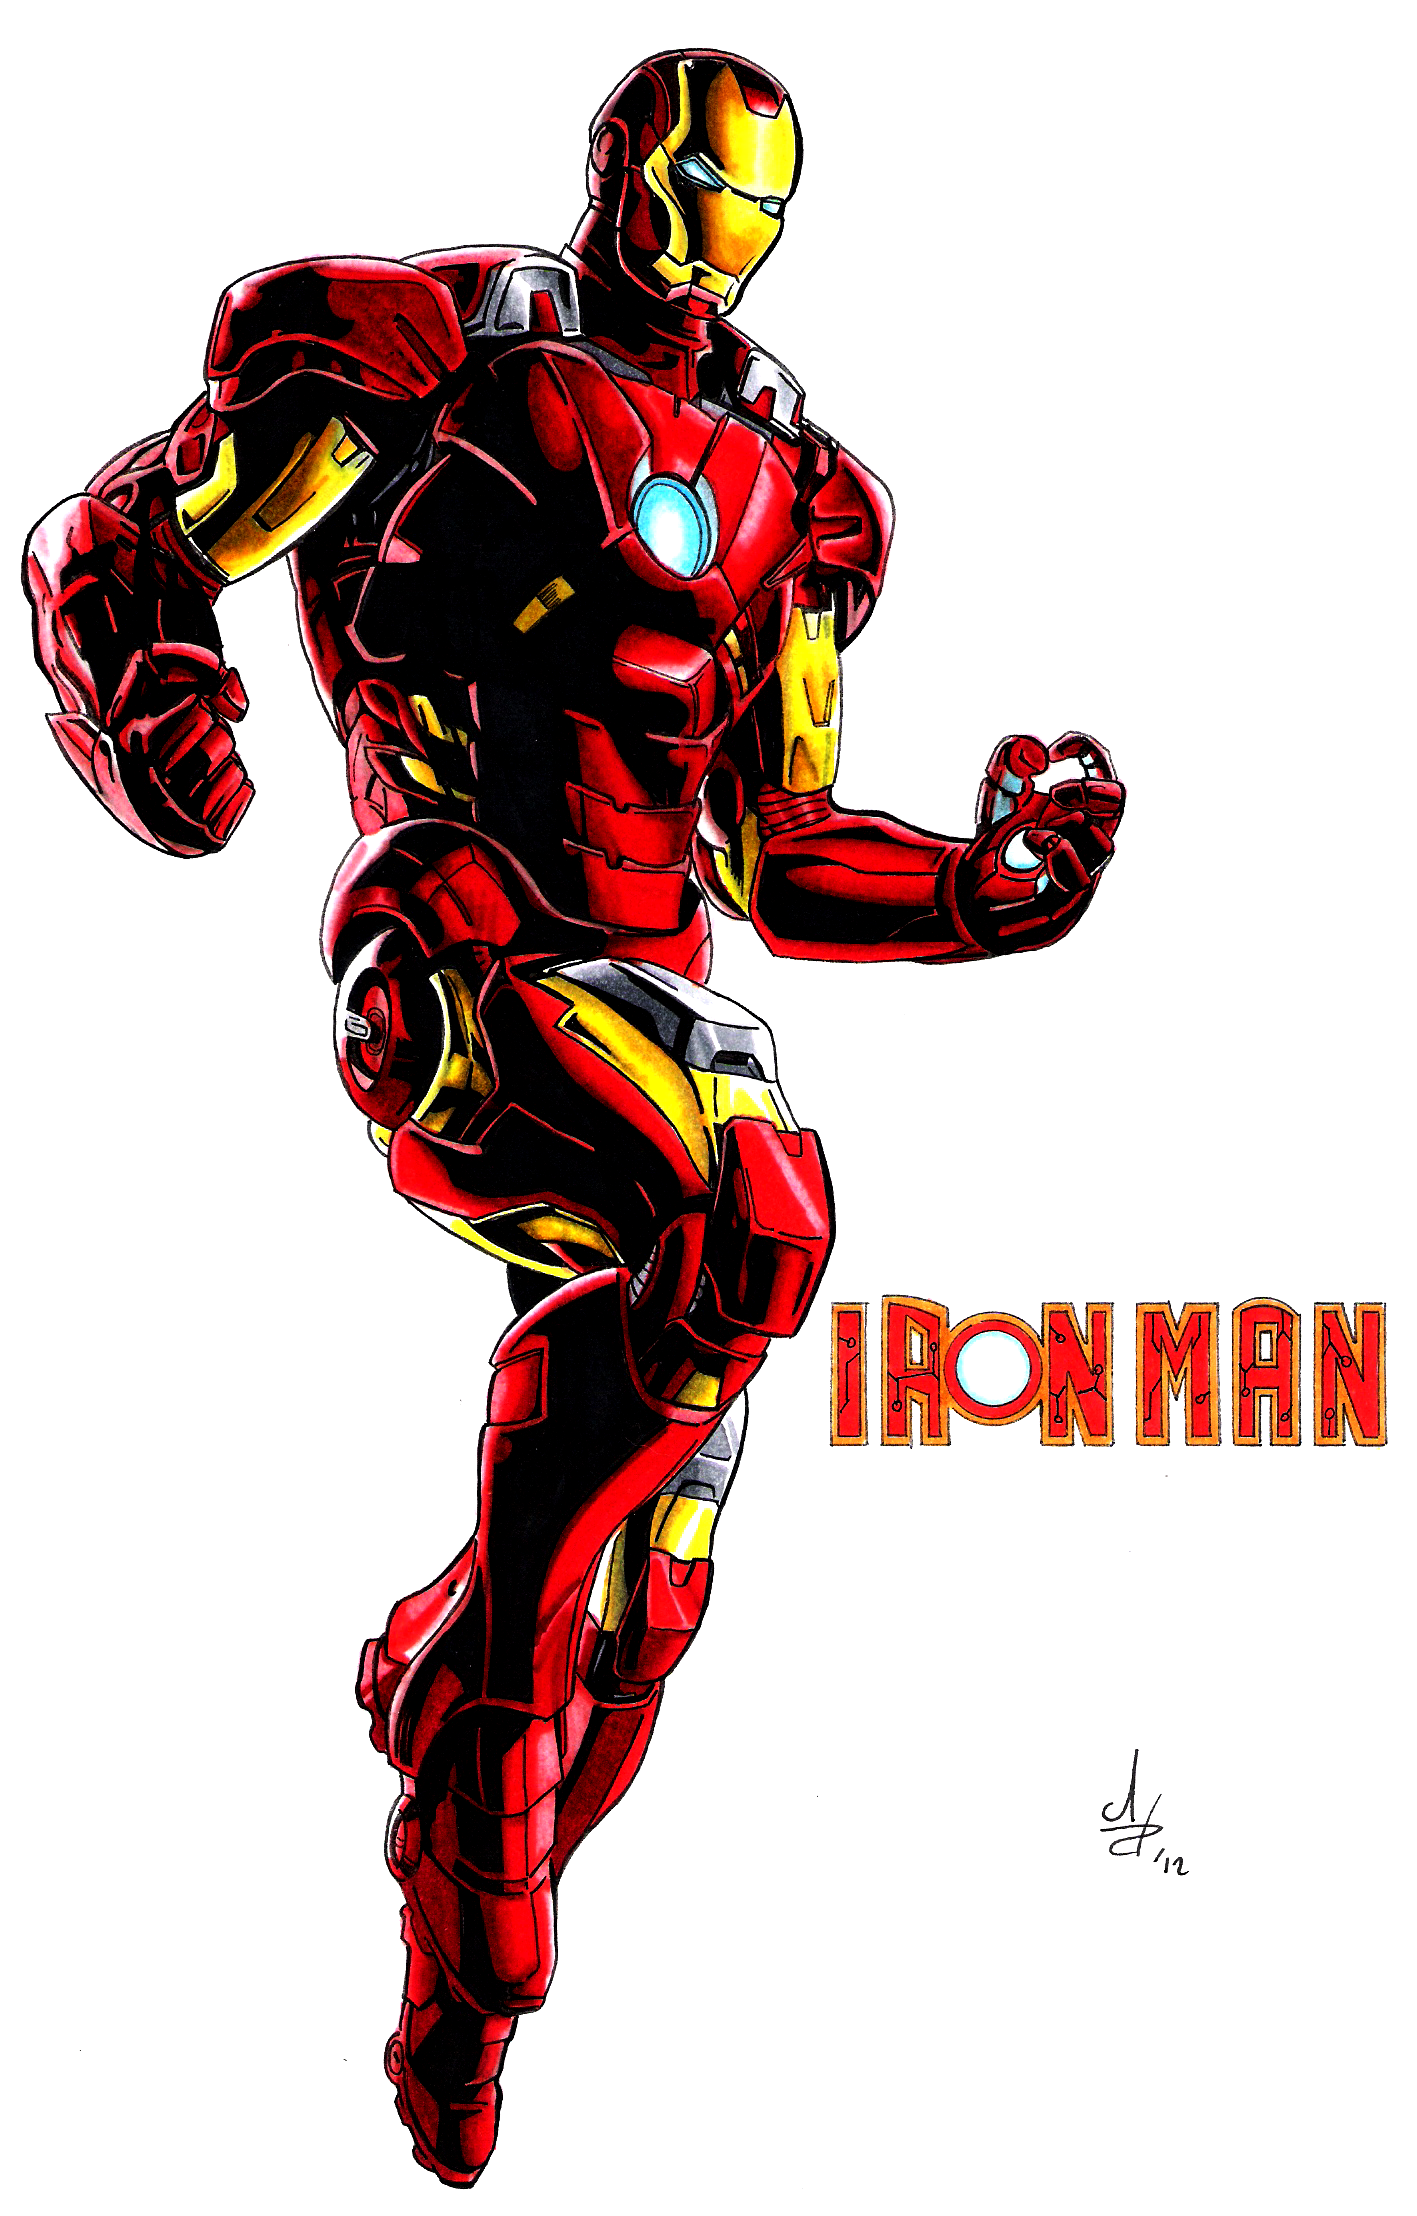 Iron man animated avengers - photo#3